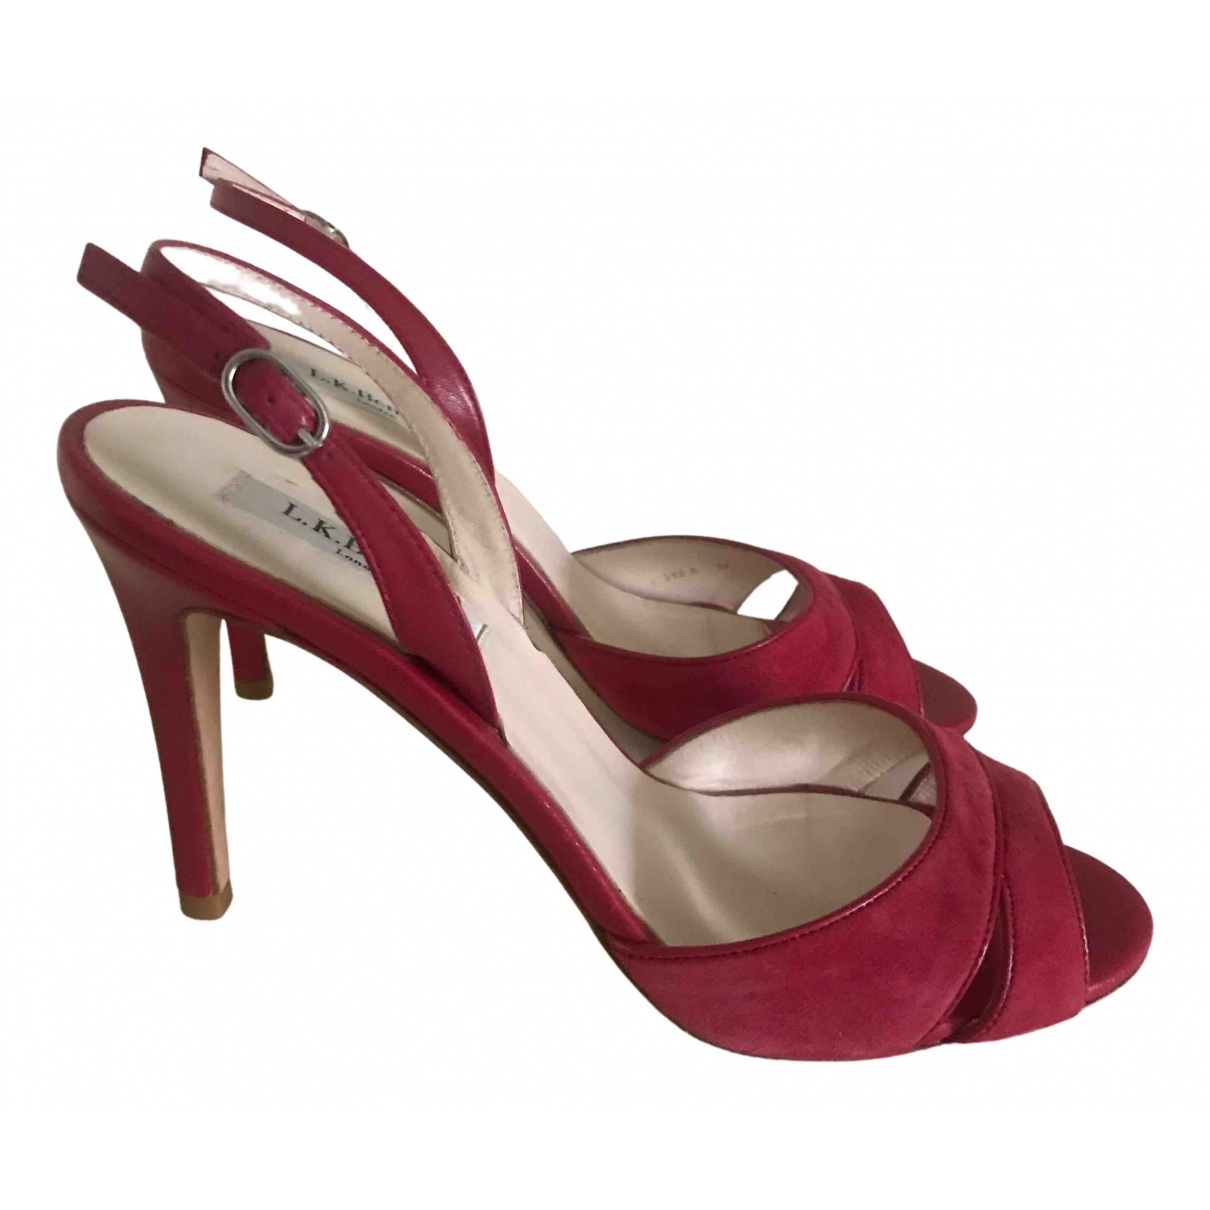 Lk Bennett N Red Leather Sandals for Women 39 EU